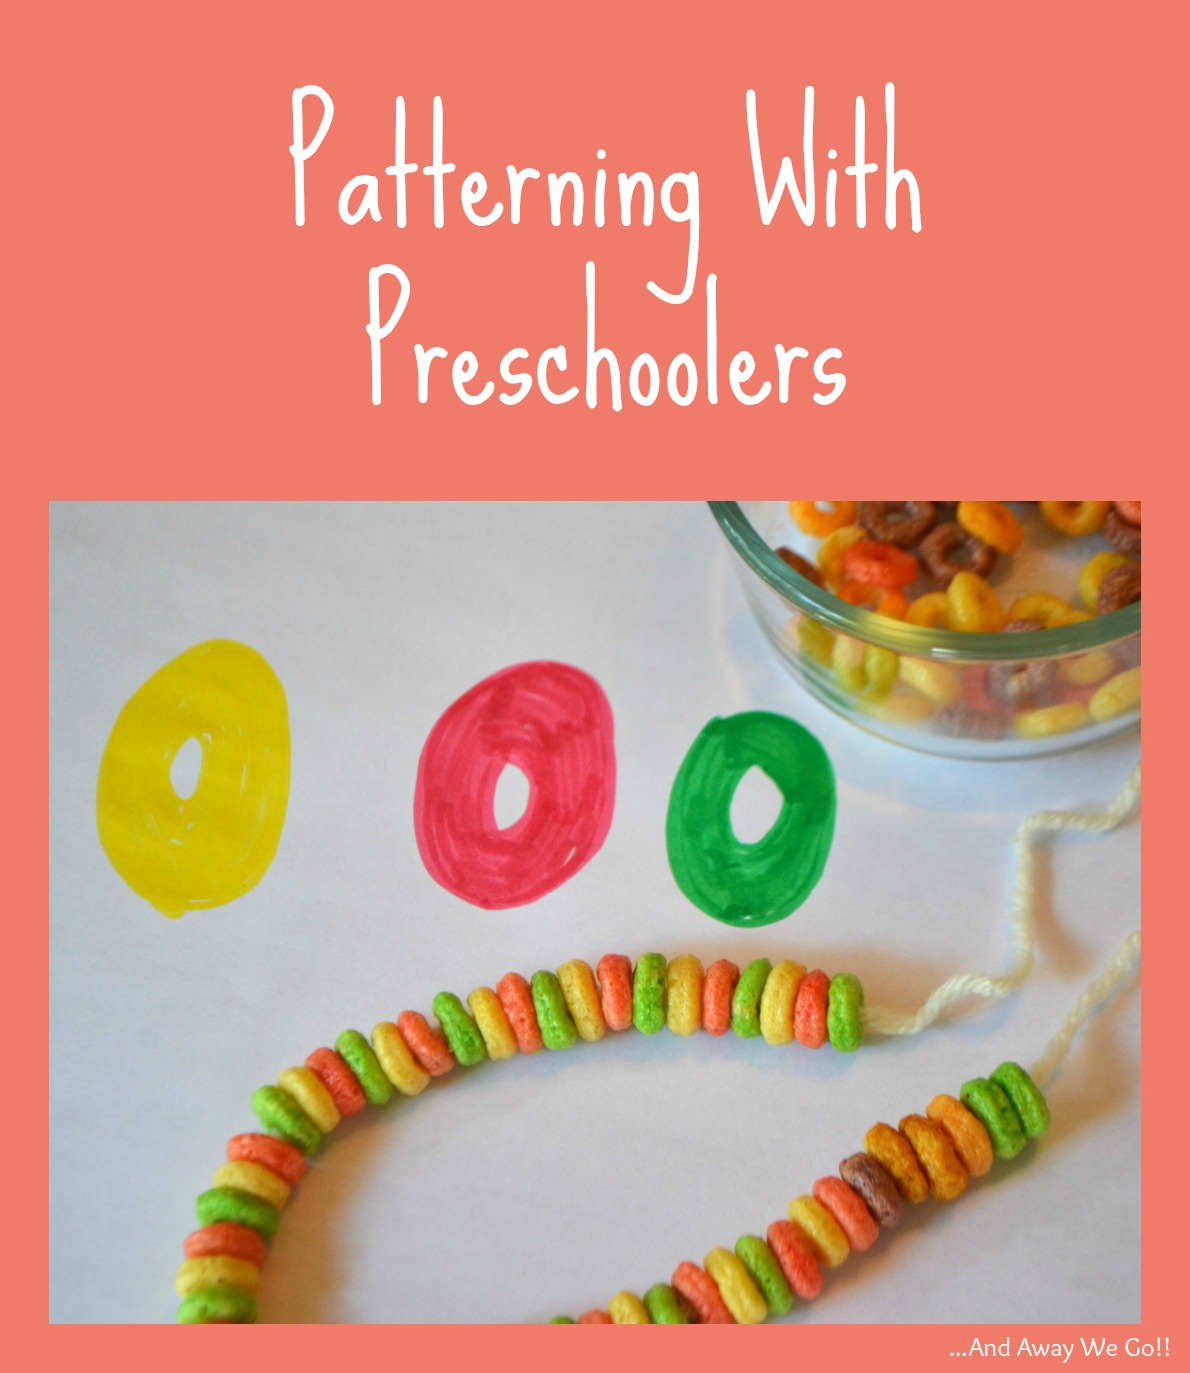 And Away We Go Patterning With Preschoolers